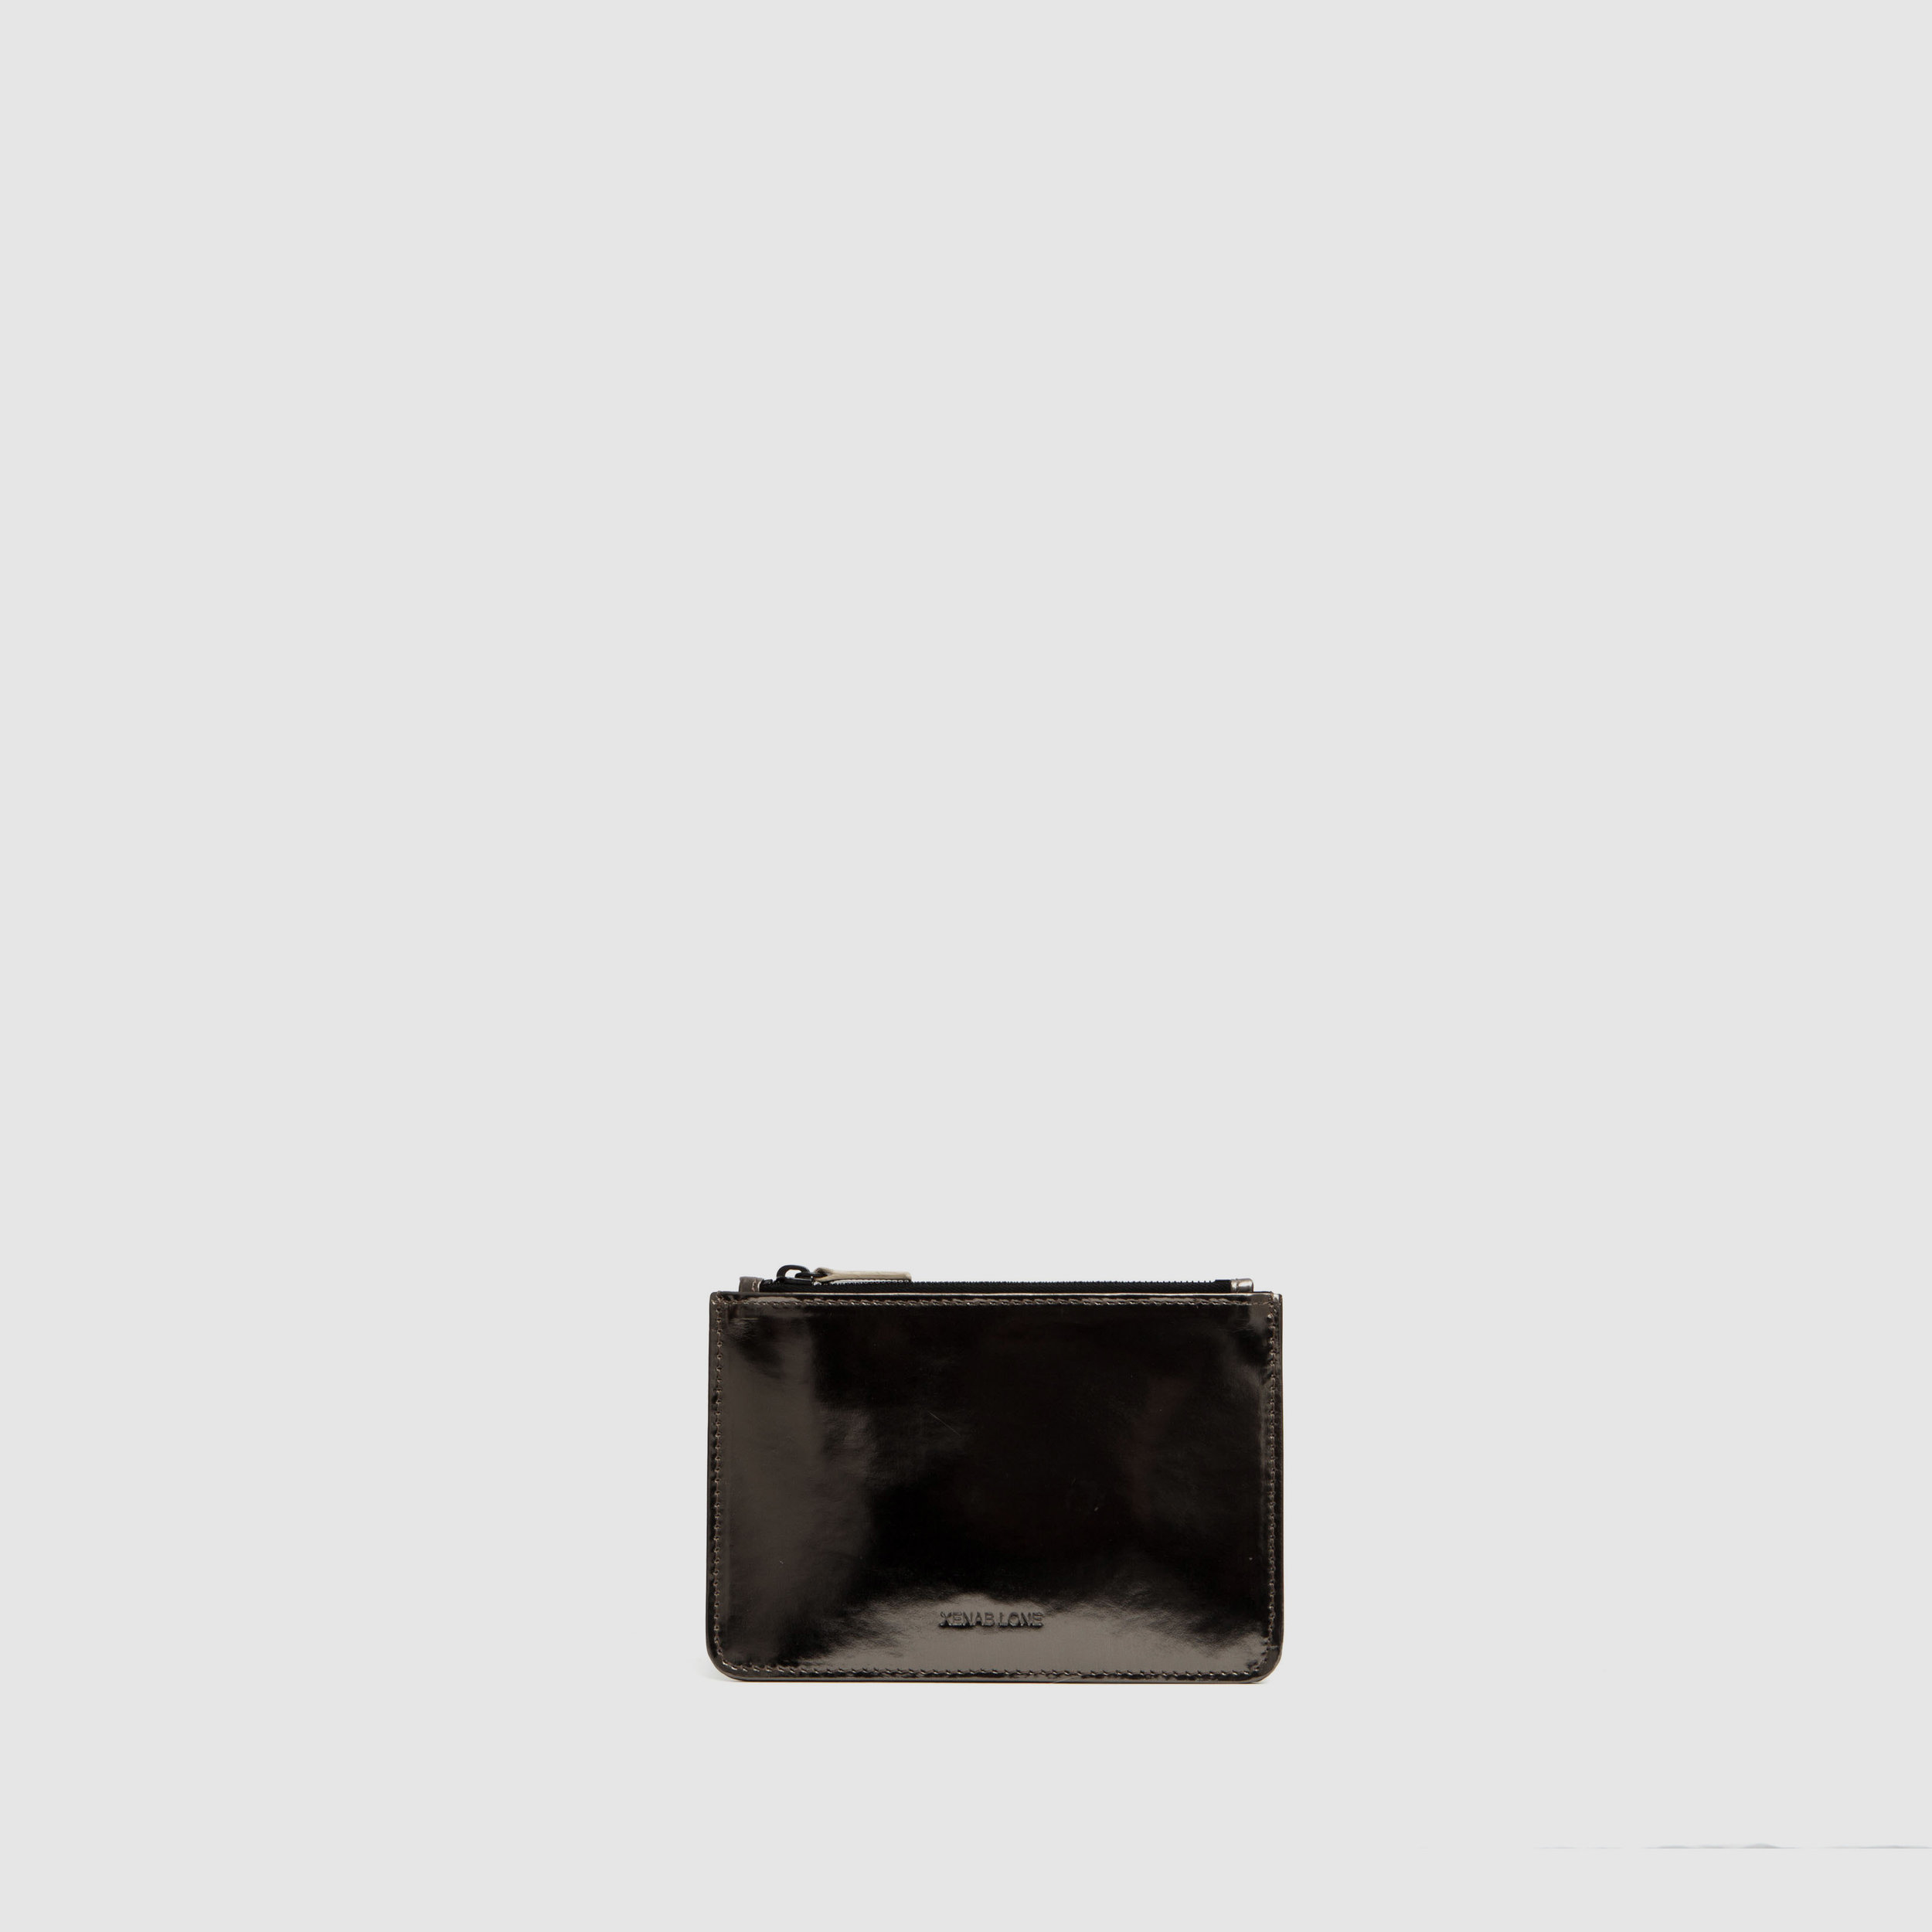 Wallets&Pouches_0003s_0000s_0000_Layer 10.jpg